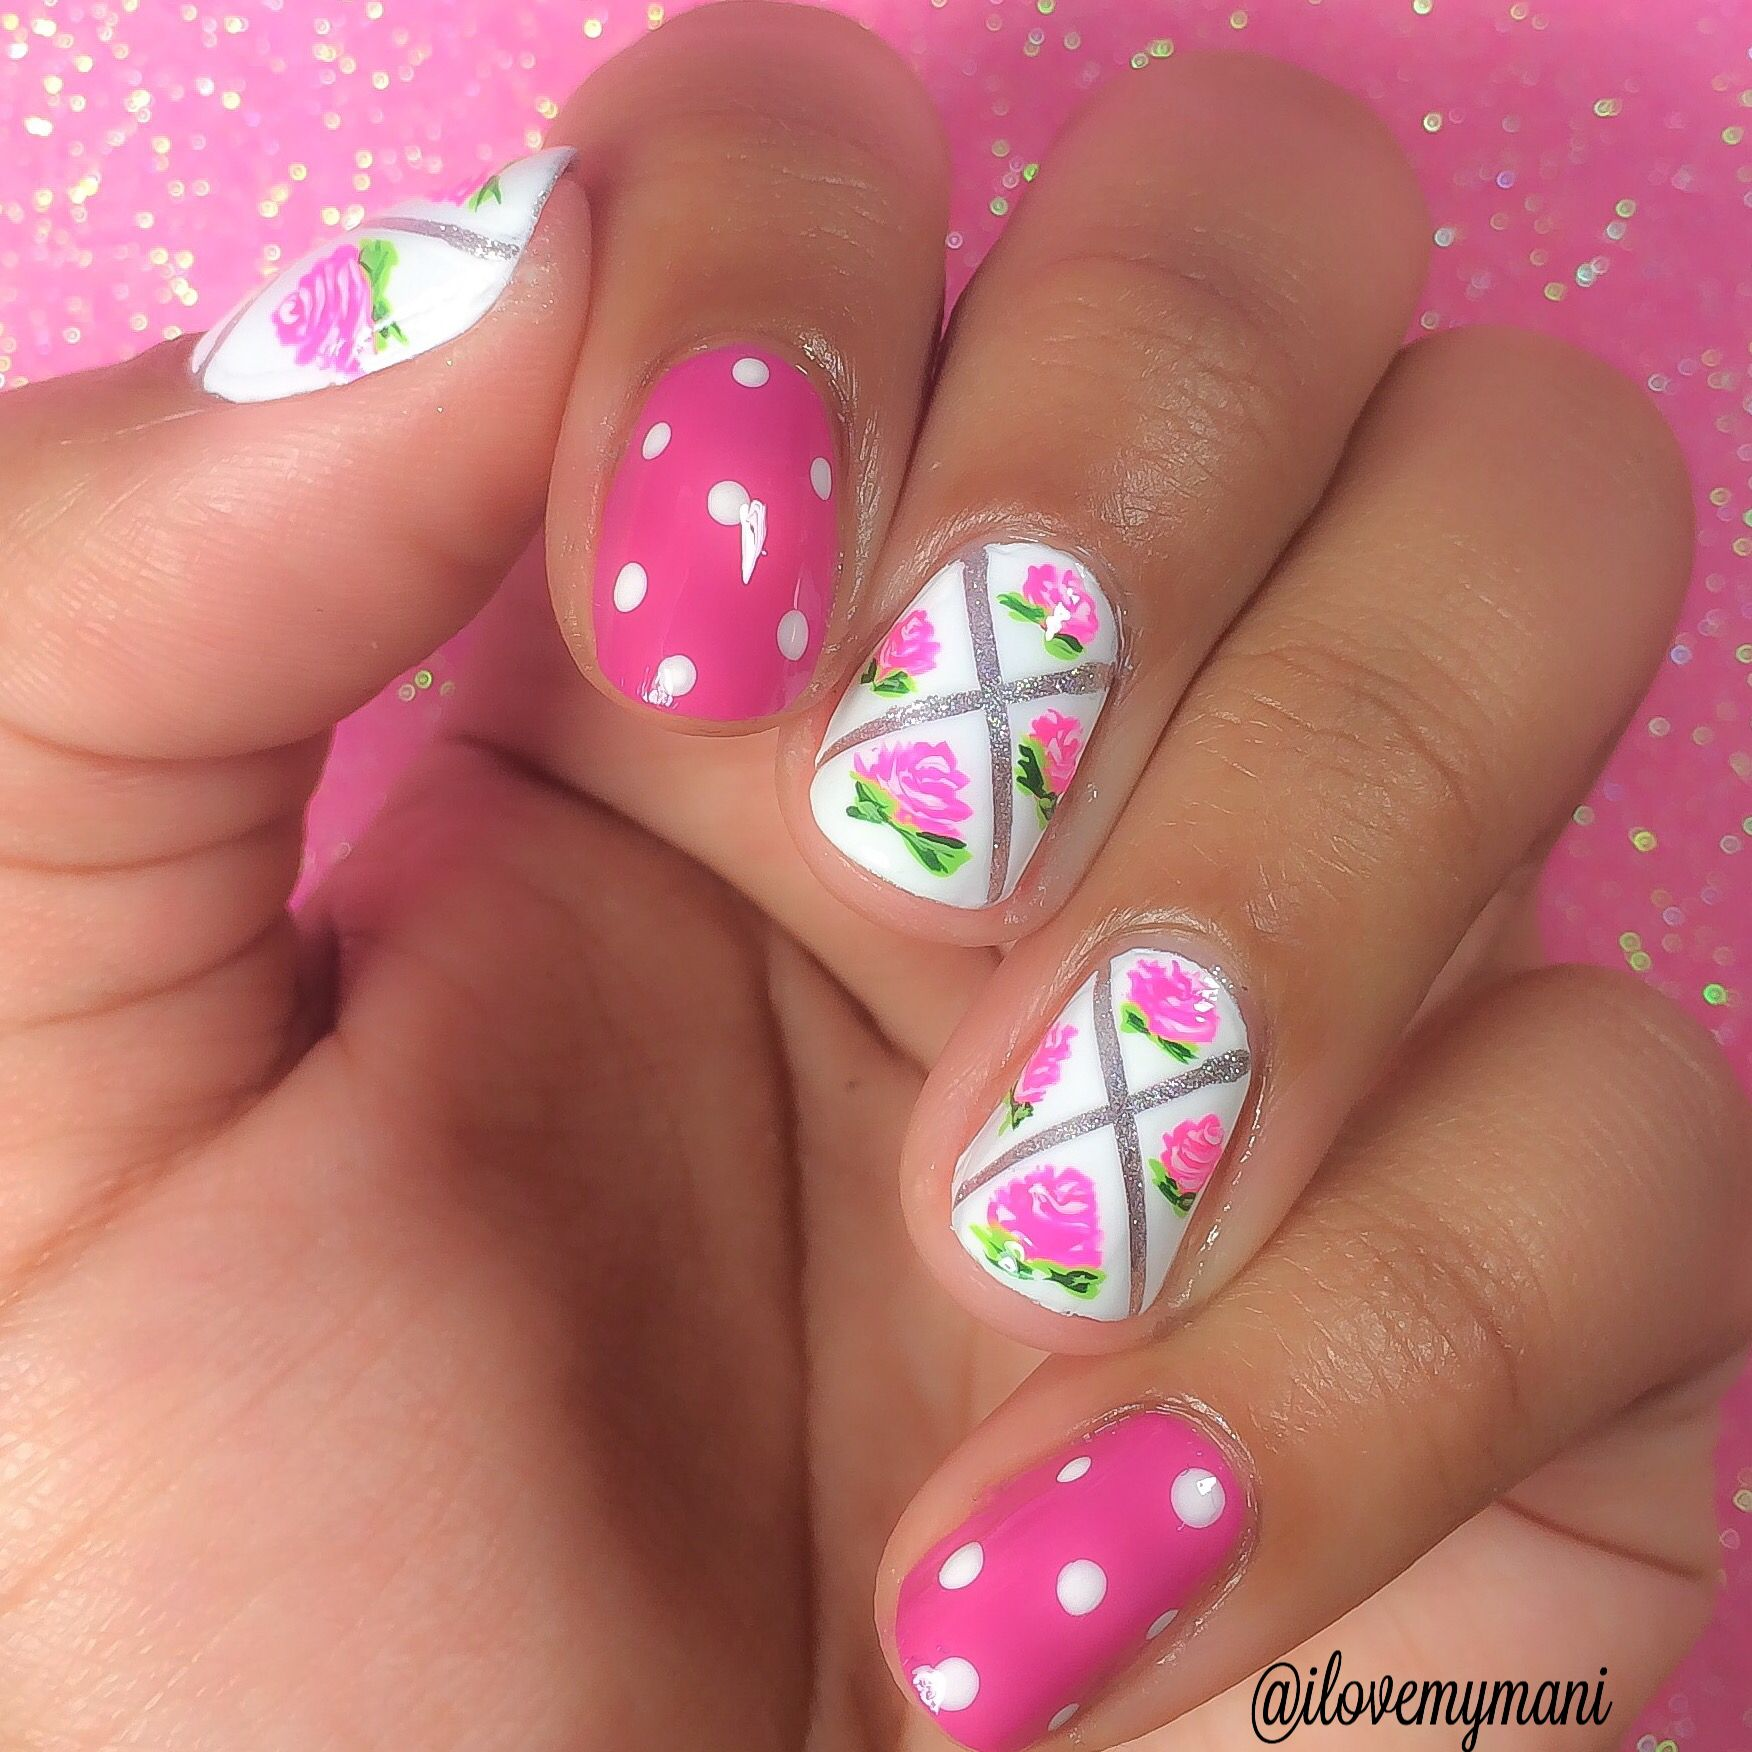 Hand painted - acrylic paint - girly floral nail art using striping ...